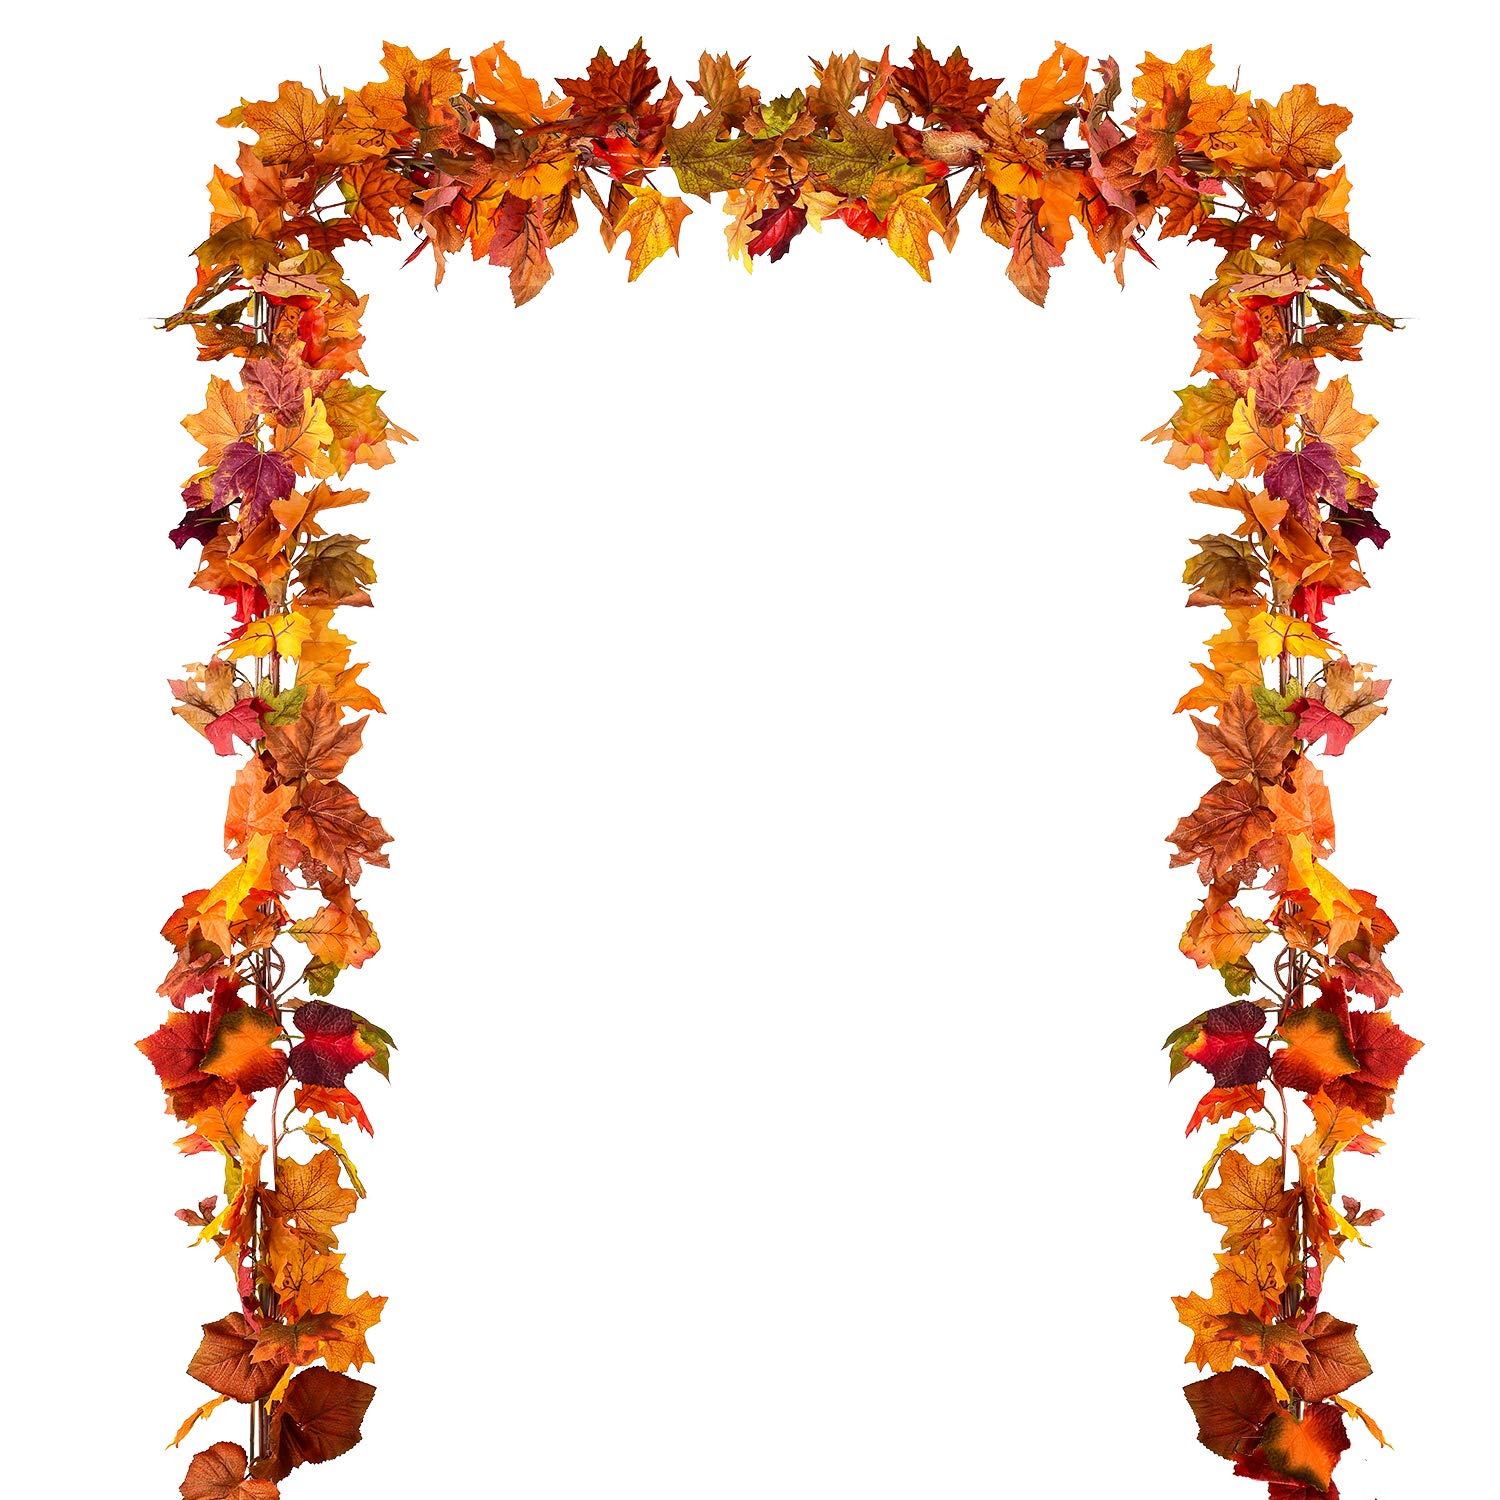 Coolmade 2 Pack Fall Garland Maple Leaf 5 9ft Piece Hanging Vine Garland Artificial Autumn Foliage Garland Thanksgiving Decor For Home Wedding Fireplace Party Christmas Walmart Com Walmart Com